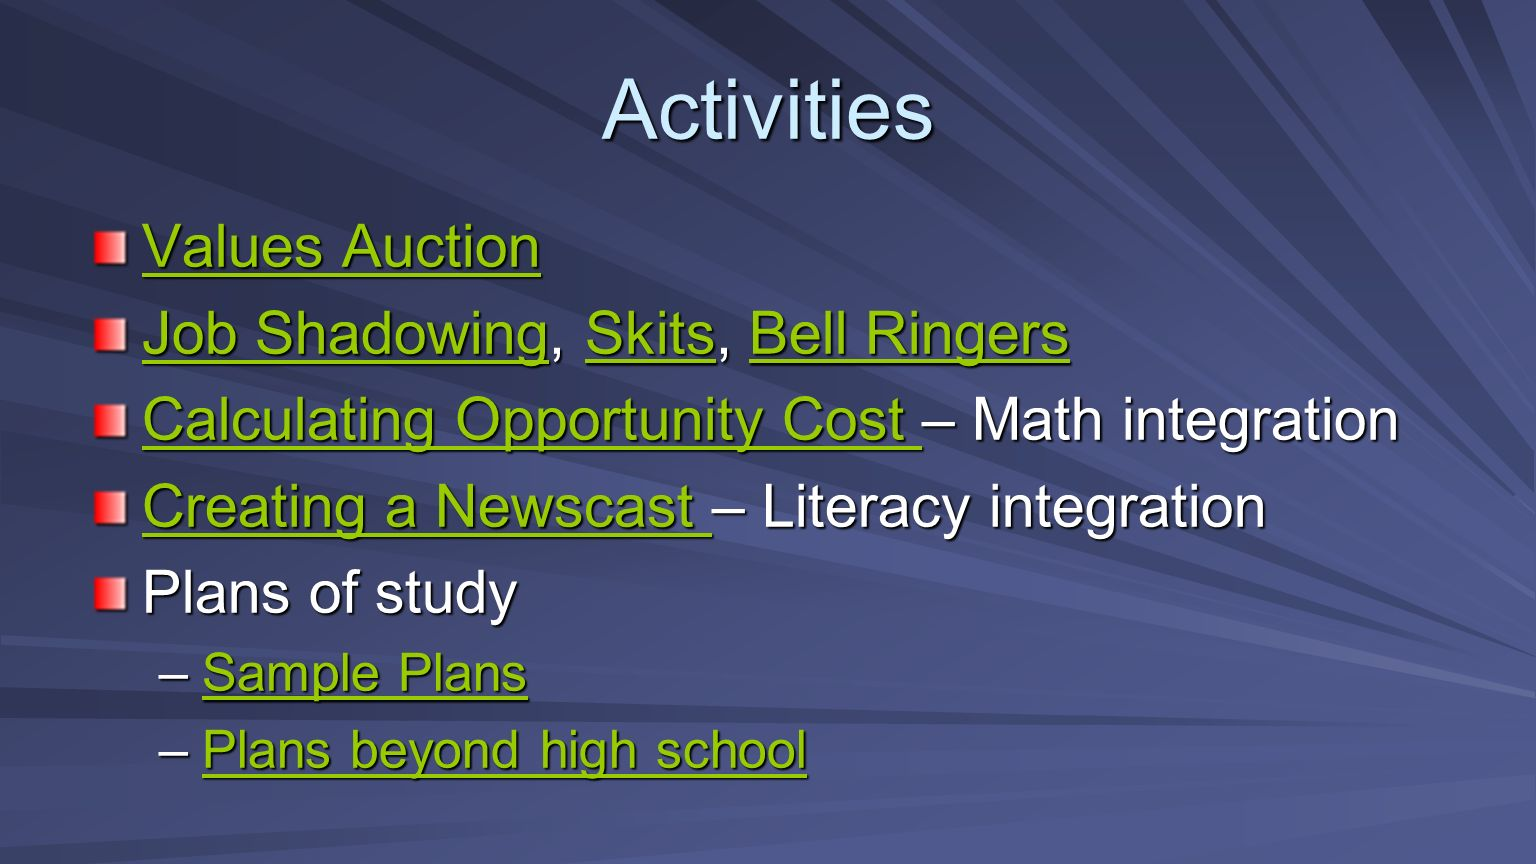 Activities Values Auction Values Auction Job ShadowingJob Shadowing, Skits, Bell Ringers SkitsBell Ringers Job ShadowingSkitsBell Ringers Calculating Opportunity Cost Calculating Opportunity Cost – Math integration Calculating Opportunity Cost Creating a Newscast Creating a Newscast – Literacy integration Creating a Newscast Plans of study –Sample Plans Sample PlansSample Plans –Plans beyond high school Plans beyond high schoolPlans beyond high school